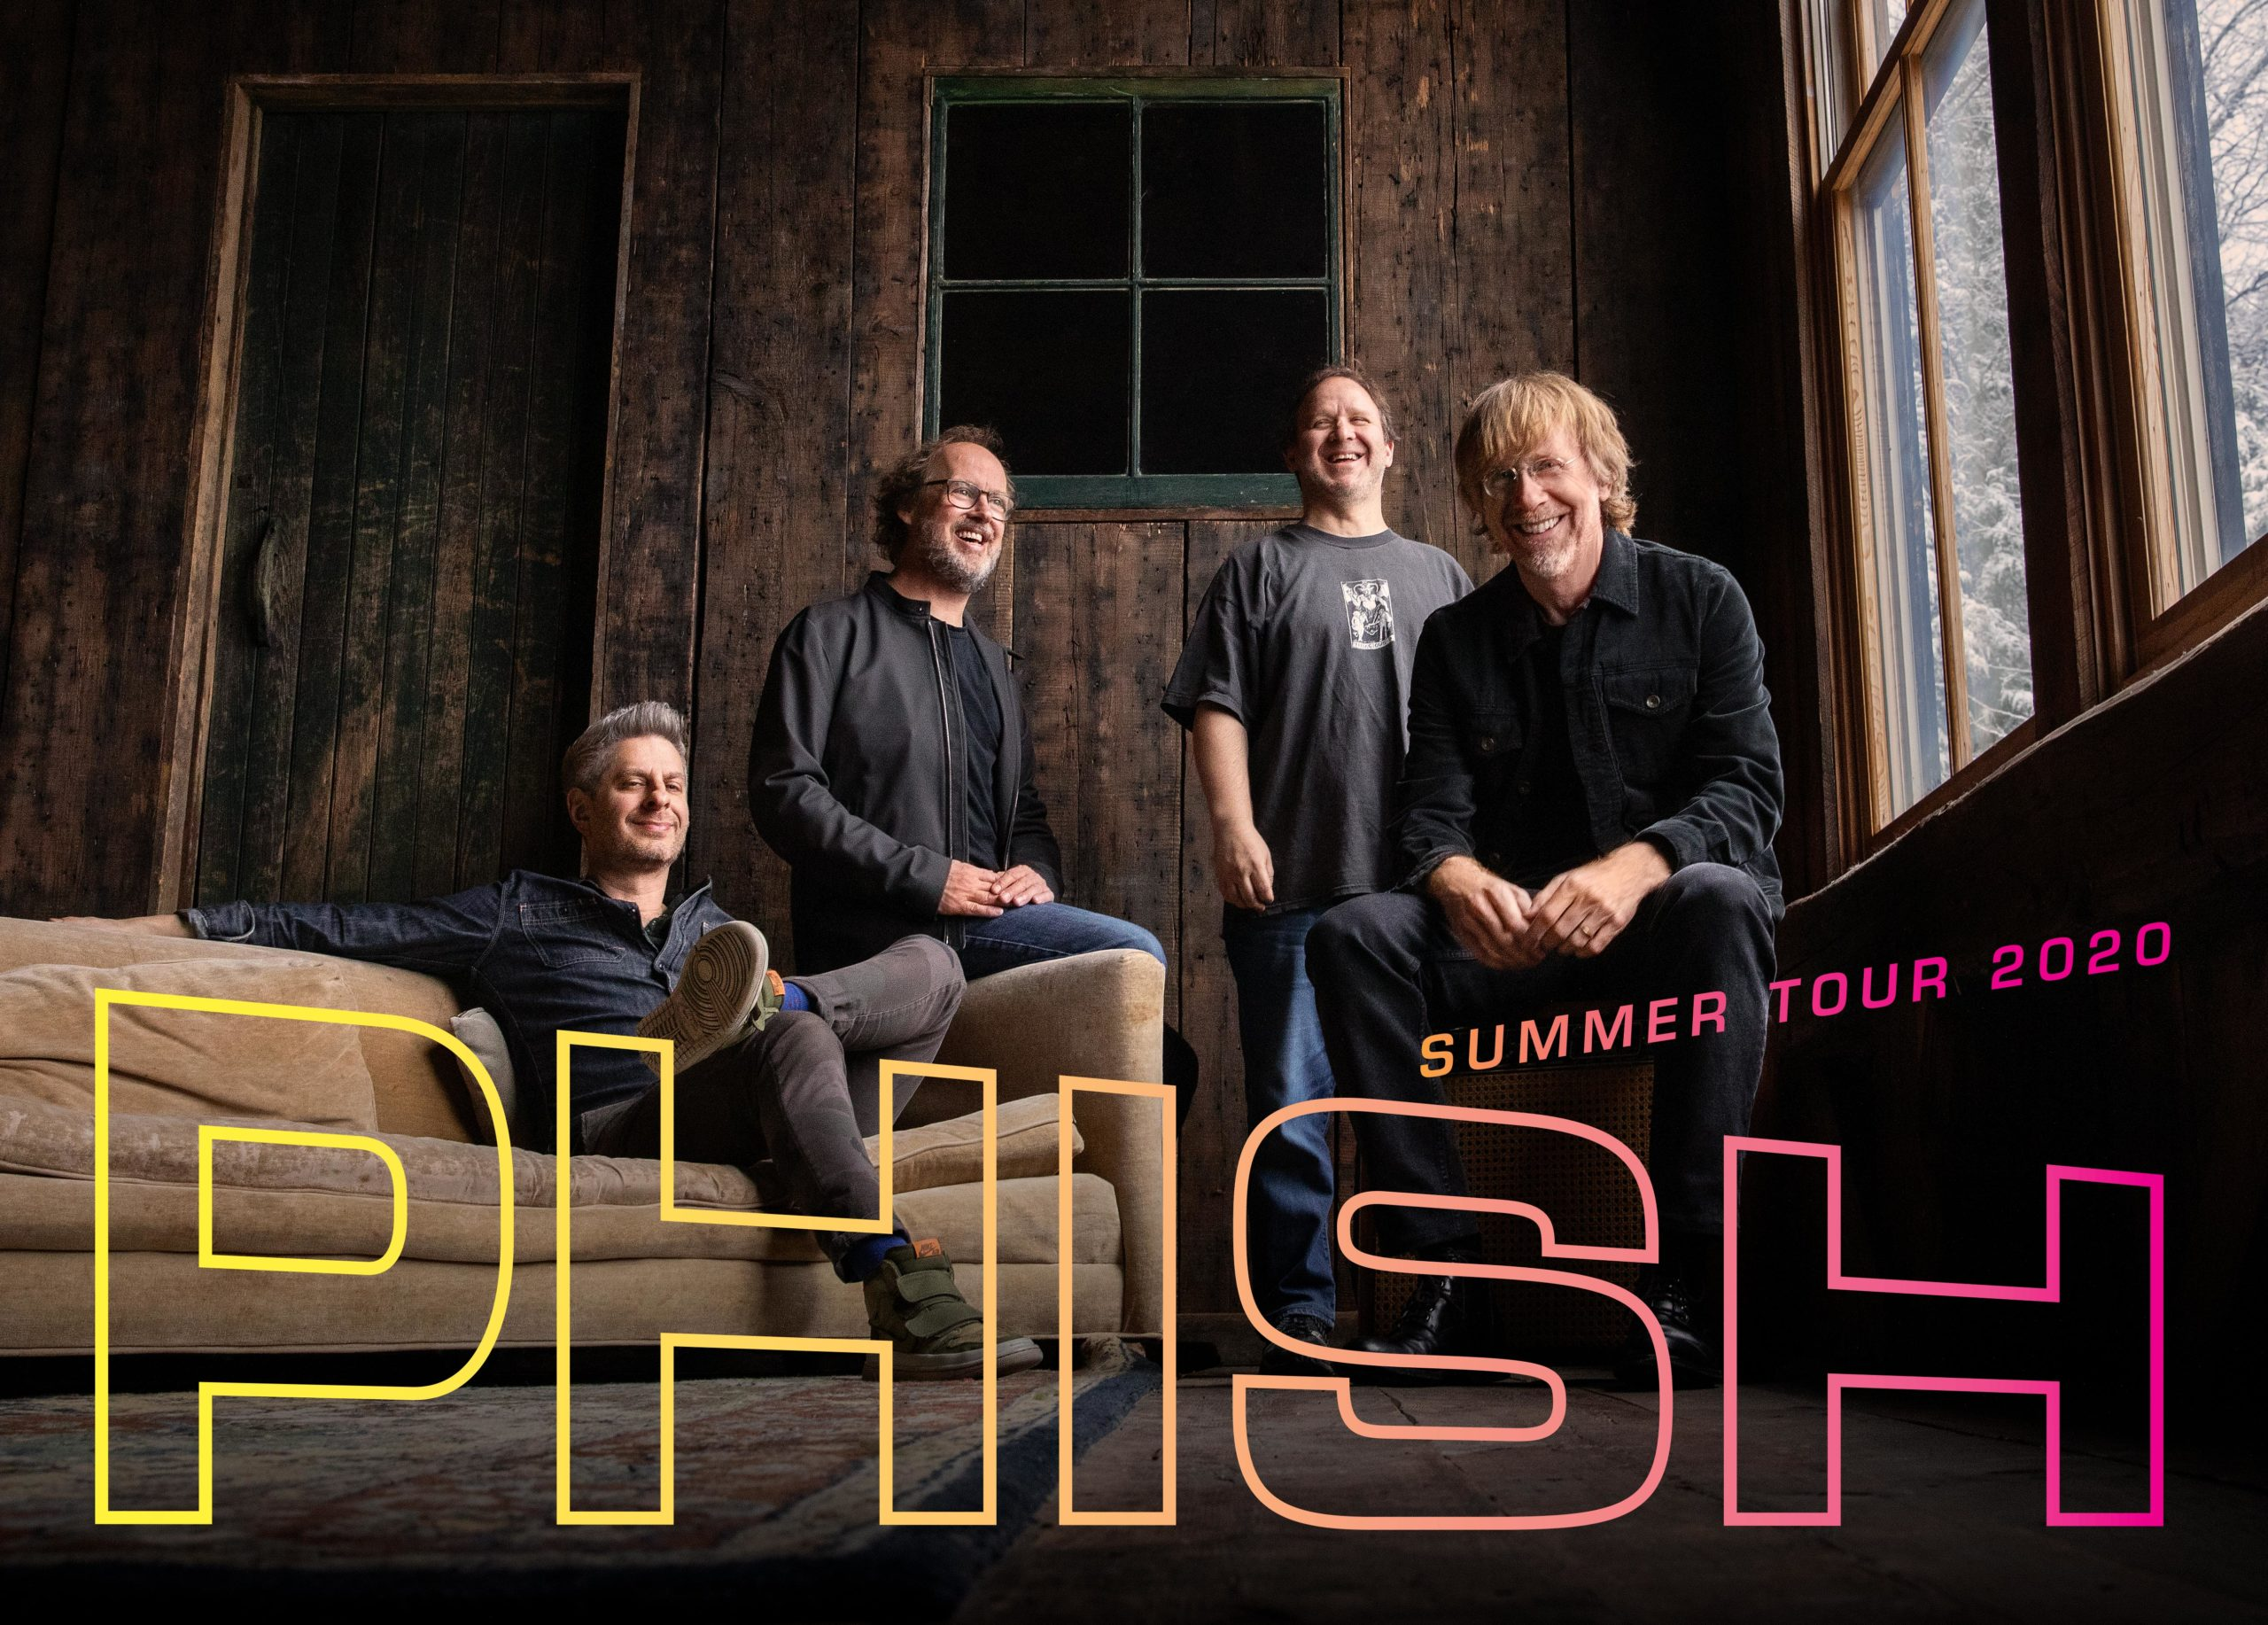 Phish [CANCELLED] at Giant Center